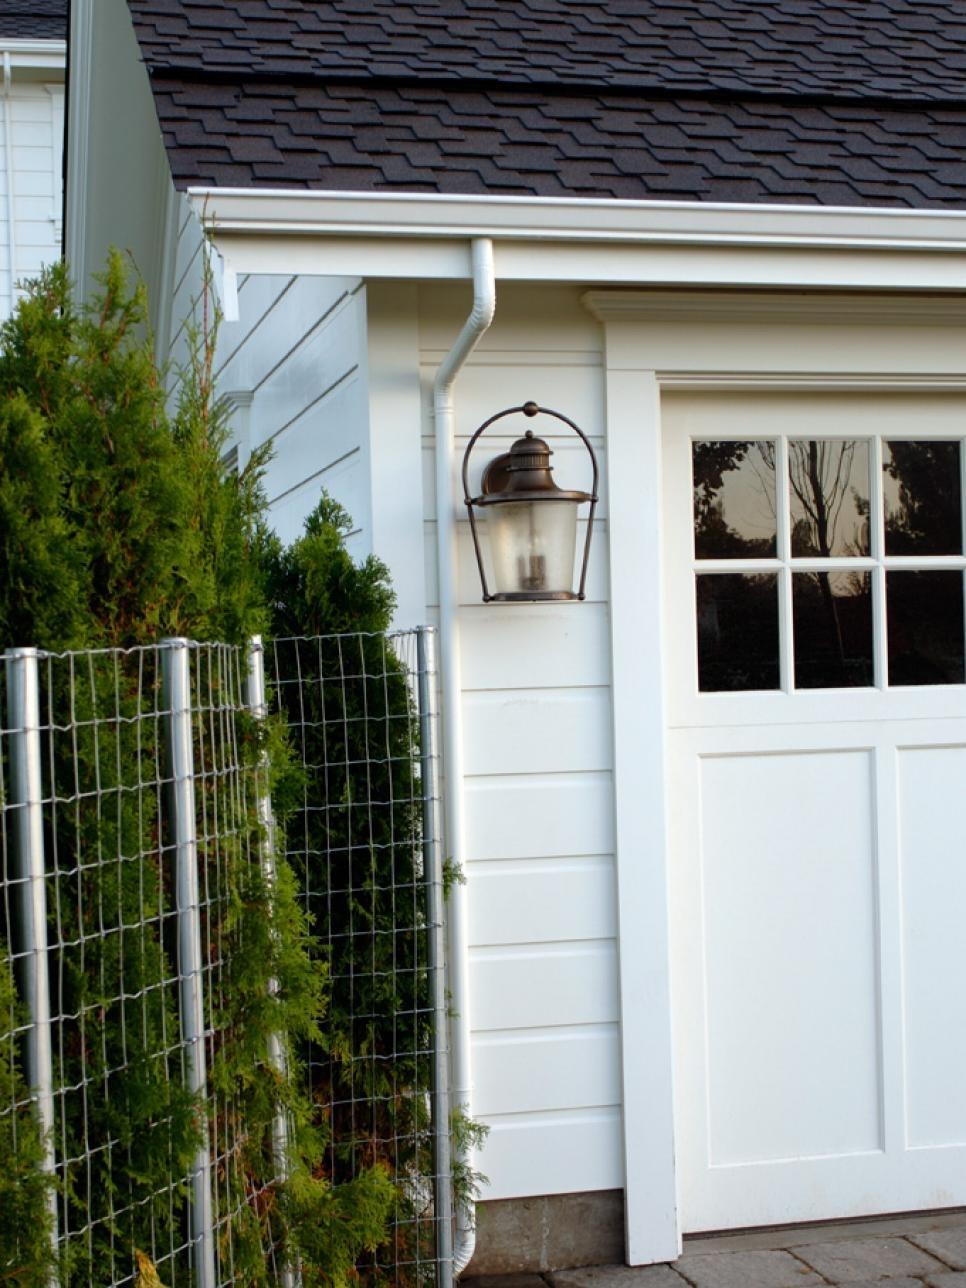 Garage Outdoor Lights | Lighting And Ceiling Fans with regard to Outdoor Lanterns for Garage (Image 13 of 20)